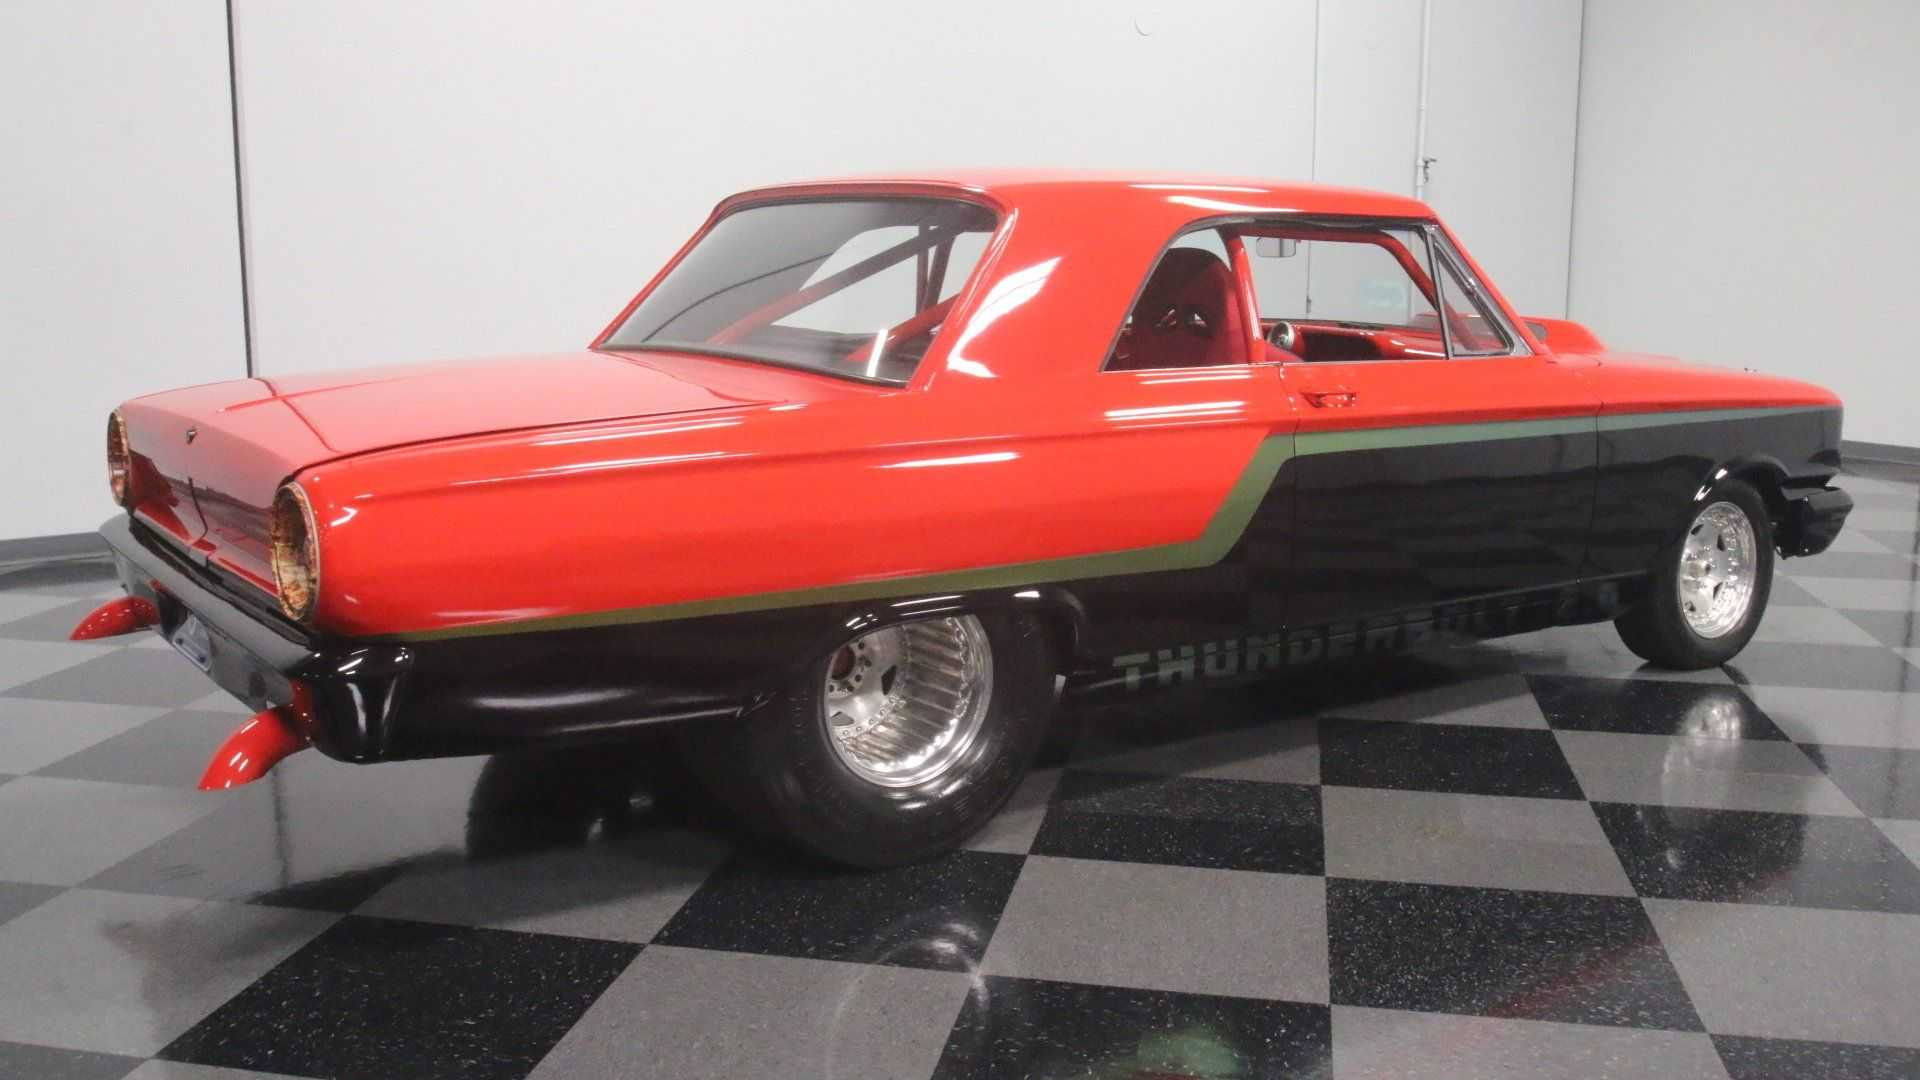 Wicked 1964 Ford Fairlane Pro Street Will Mess Up The